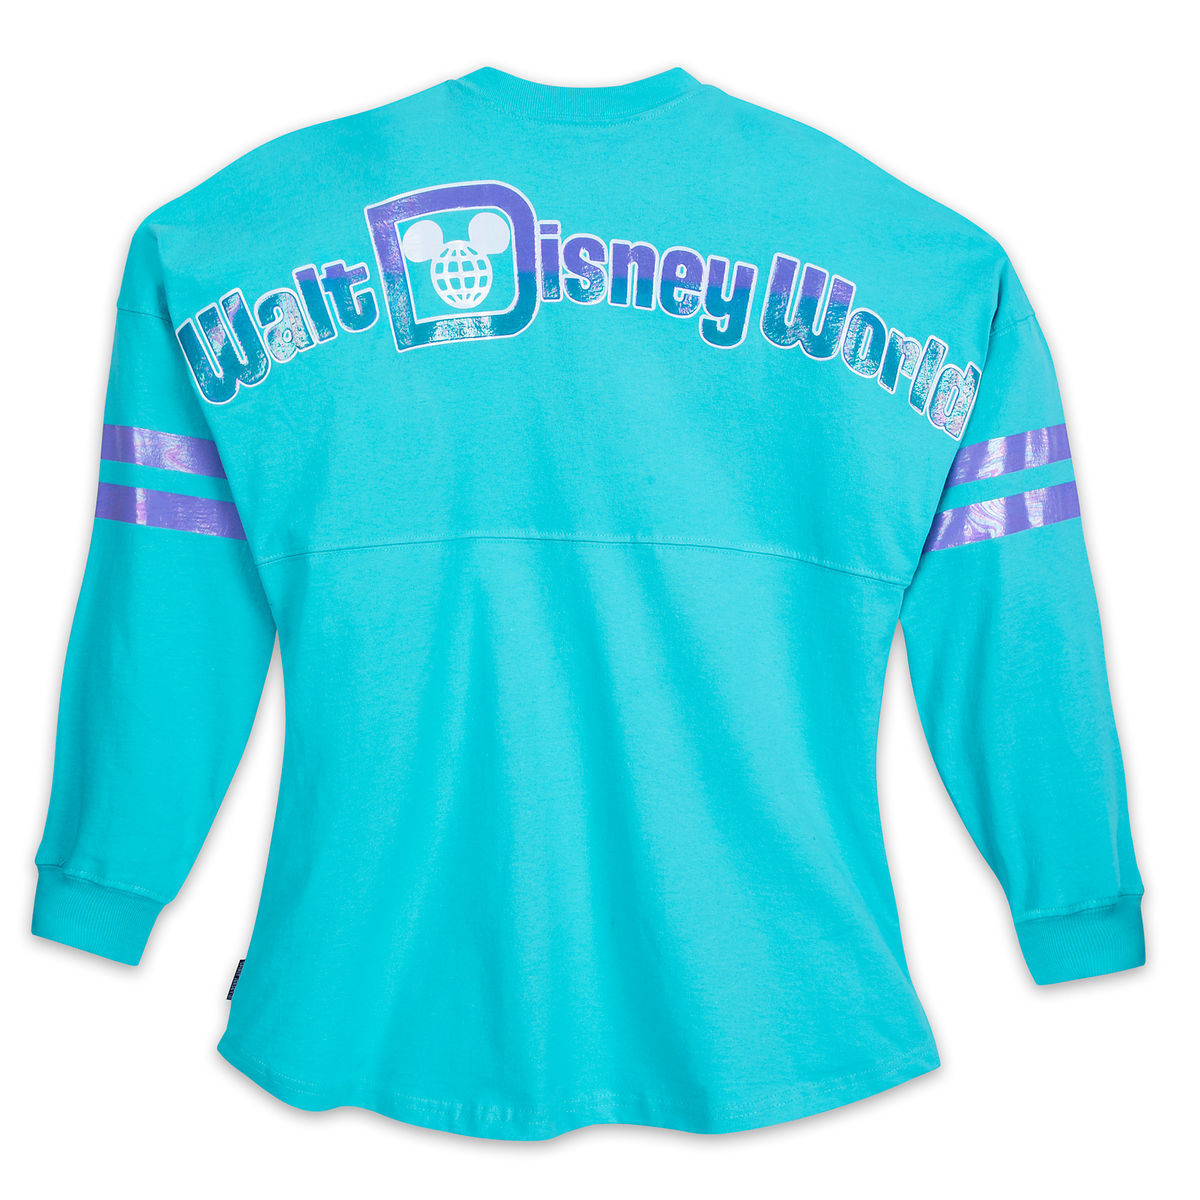 Black Friday Online at ShopDisney! 4